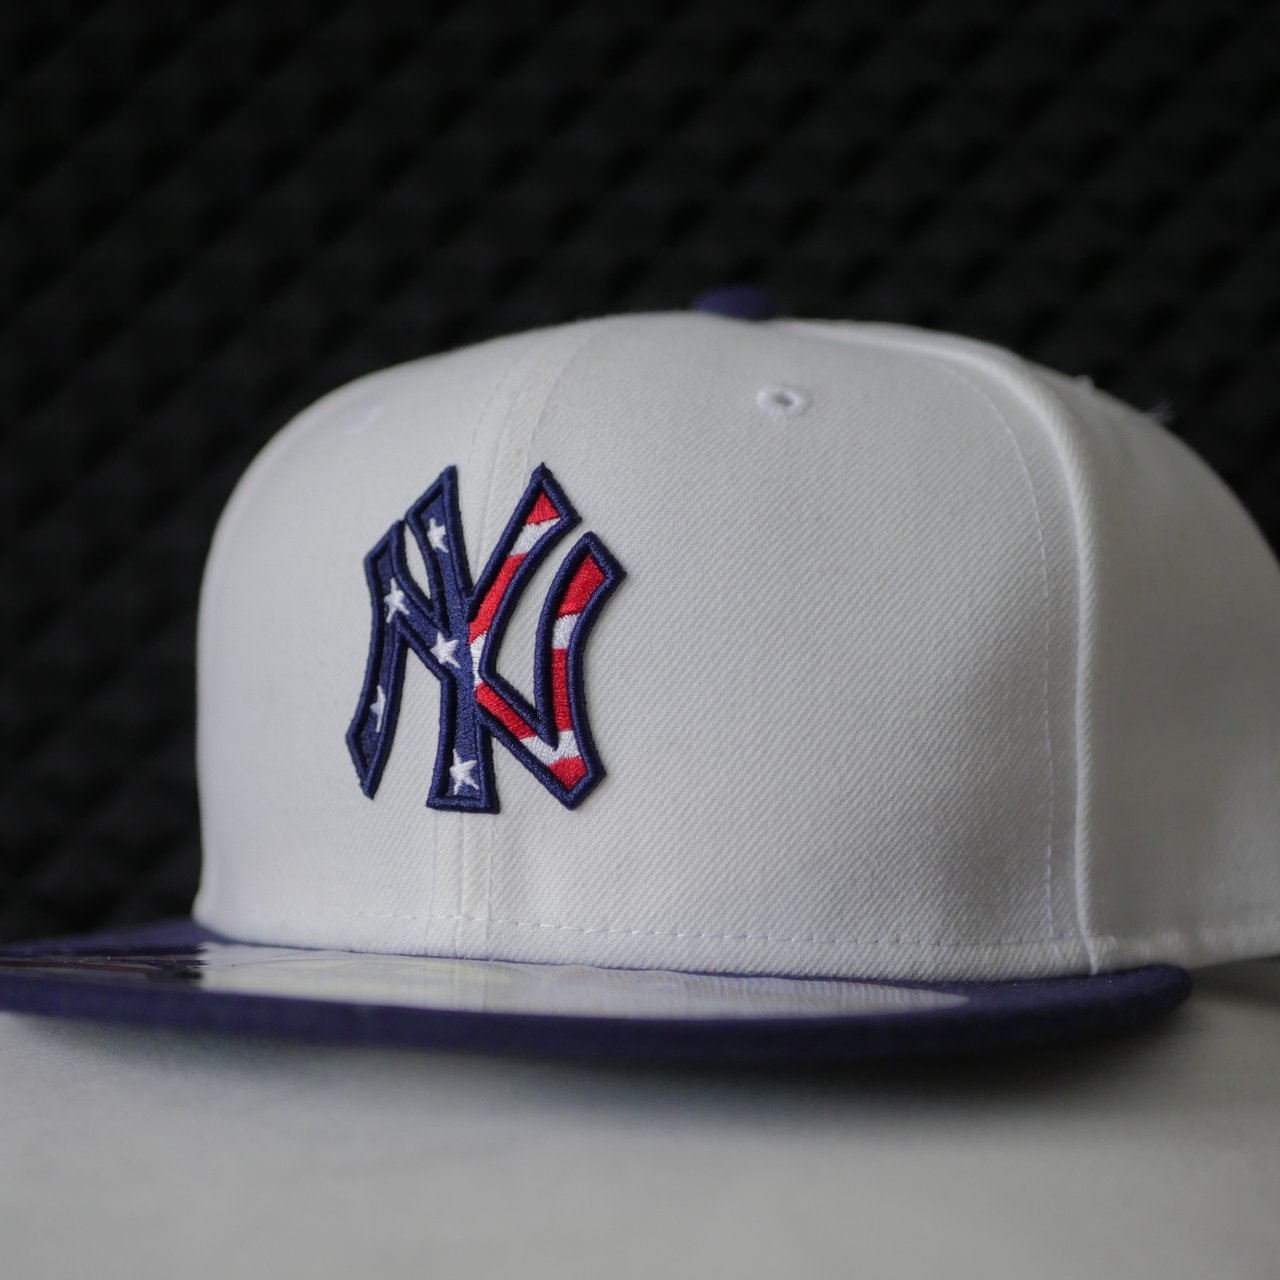 New Era 59Fifty Cap  NYC YANKEES 4TH JULY (STARS AND BARS) 1 - Depop 26892abe6a51